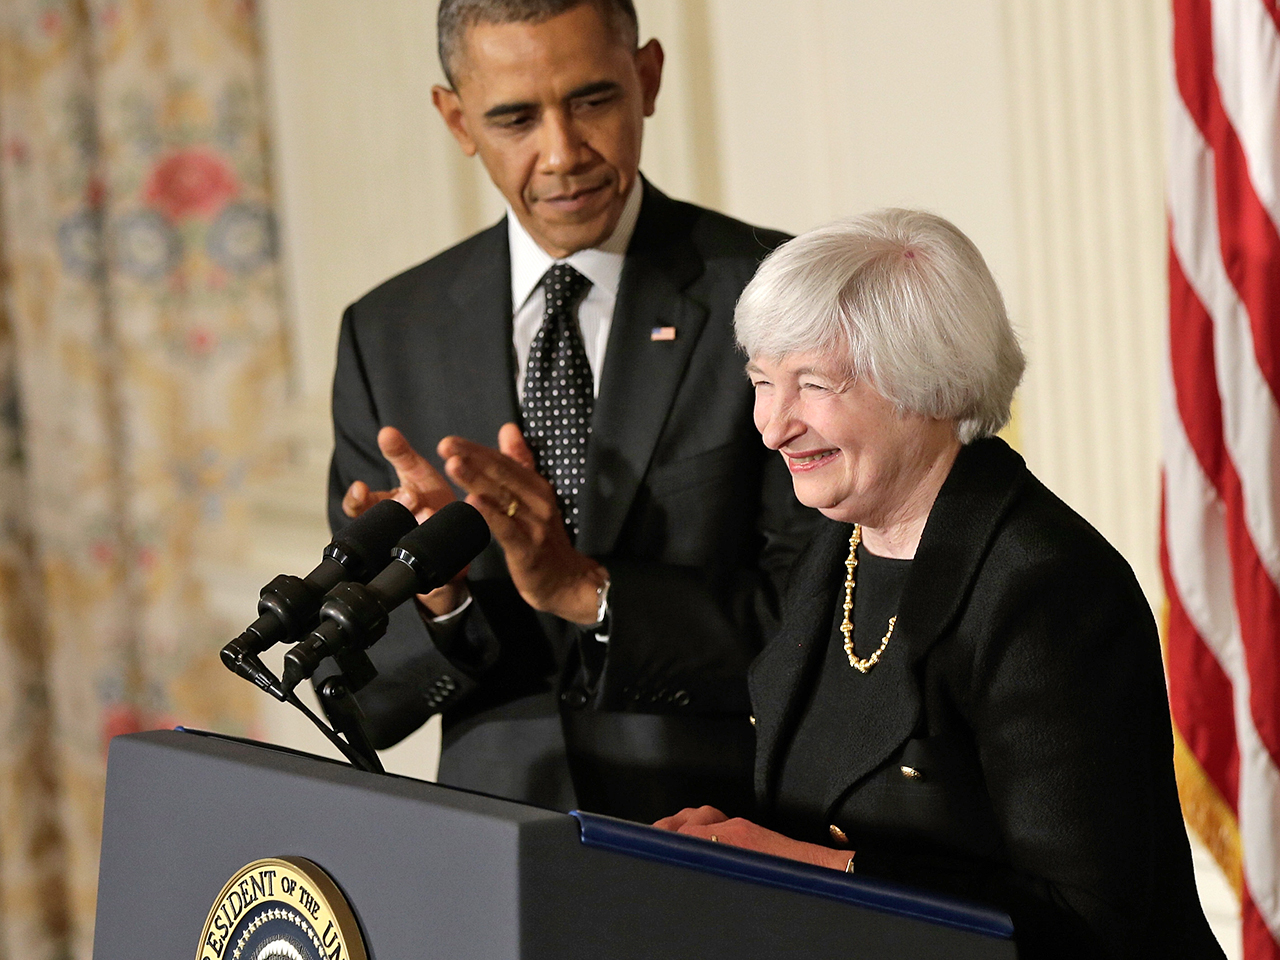 President Barack Obama claps during a press conference to nominate Janet Yellen to head the Federal Reserve in the State Dining Room at the White House on Wednesday.